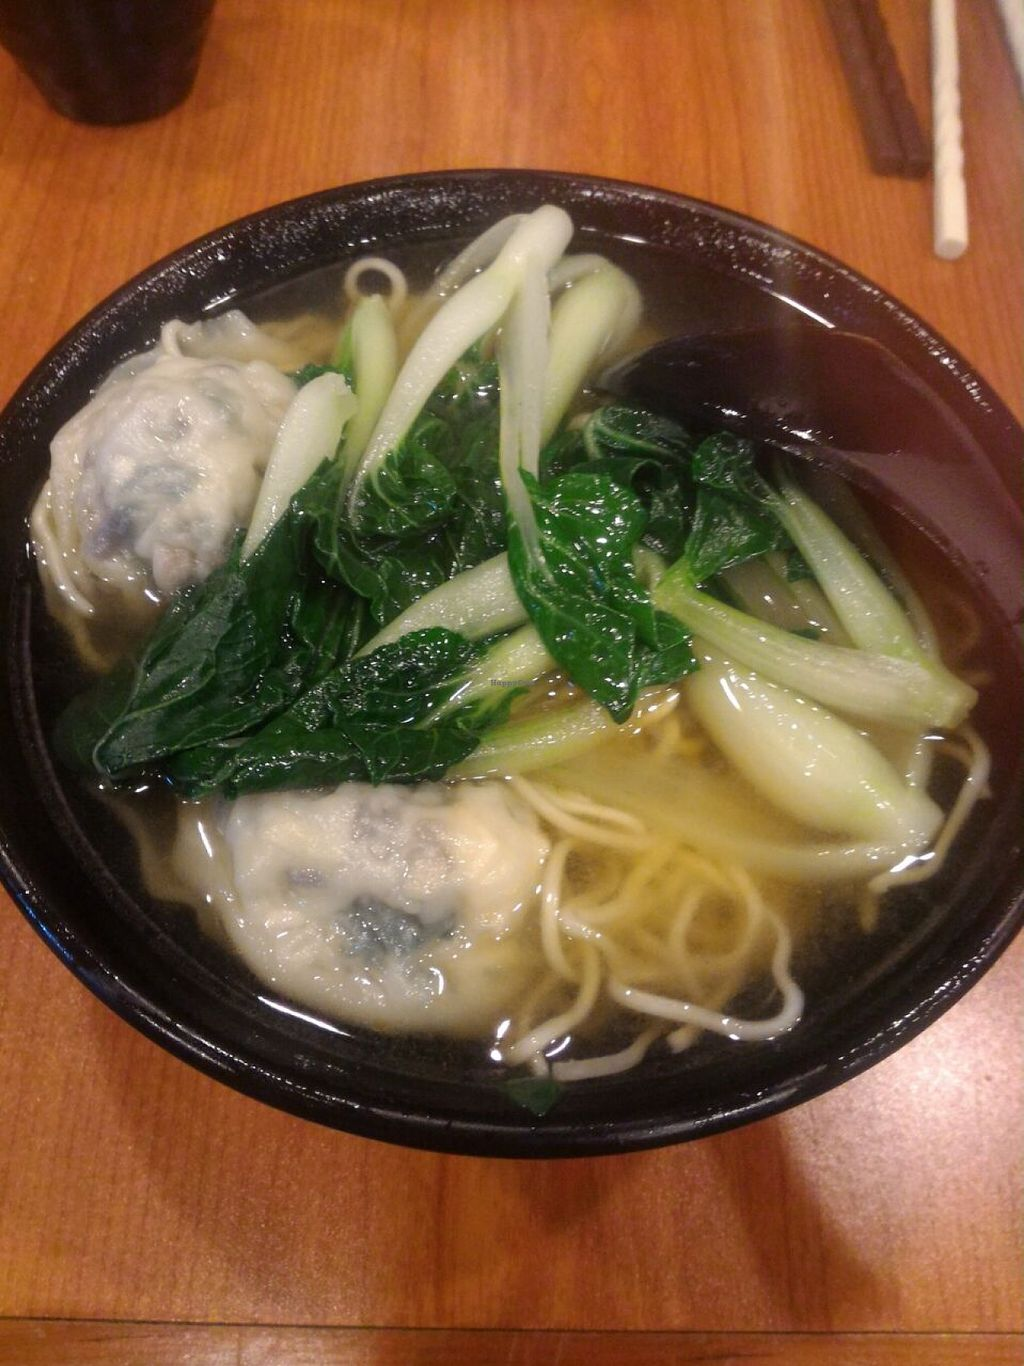 """Photo of CLOSED: Lotus Vegetarian  by <a href=""""/members/profile/ouikouik"""">ouikouik</a> <br/>wanton noodles (hkd37) <br/> December 11, 2015  - <a href='/contact/abuse/image/46656/127937'>Report</a>"""